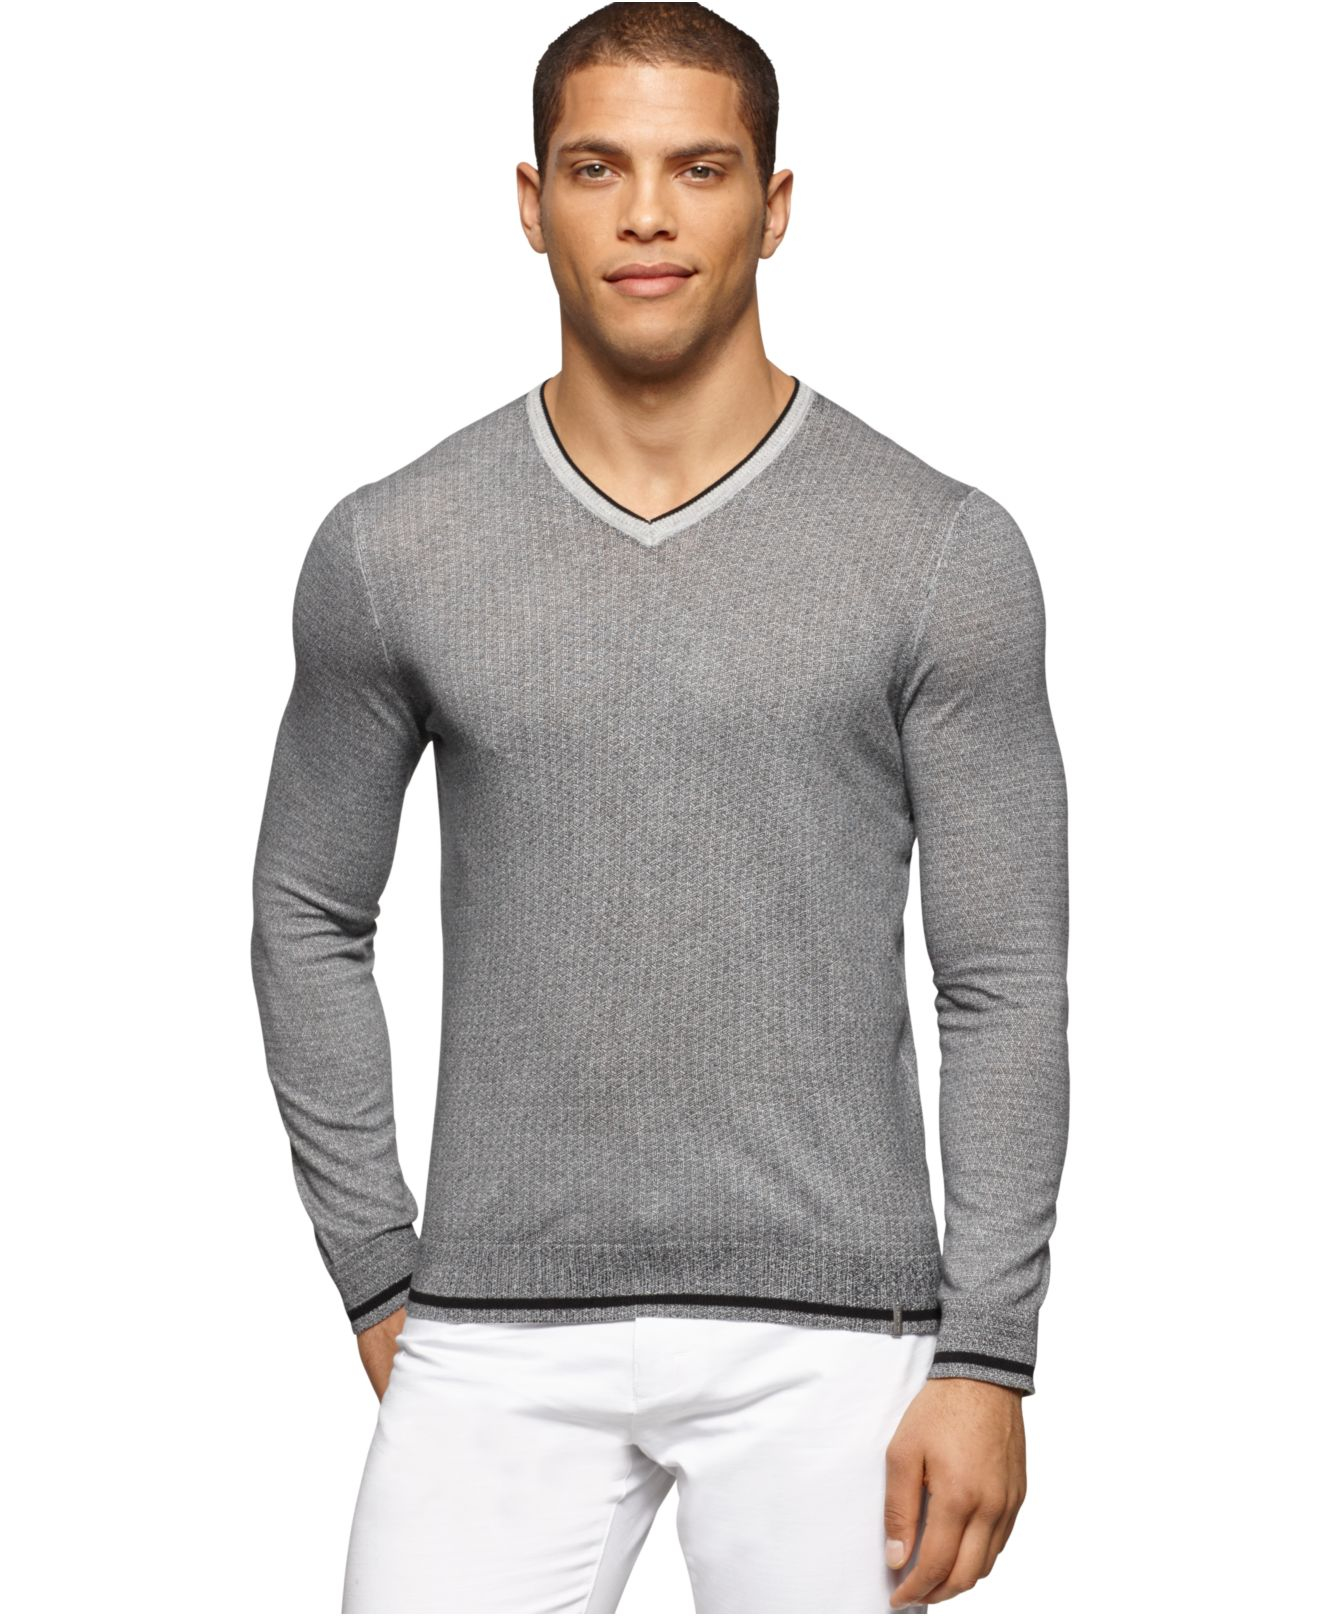 calvin klein v neck micro cable knit sweater in gray for. Black Bedroom Furniture Sets. Home Design Ideas